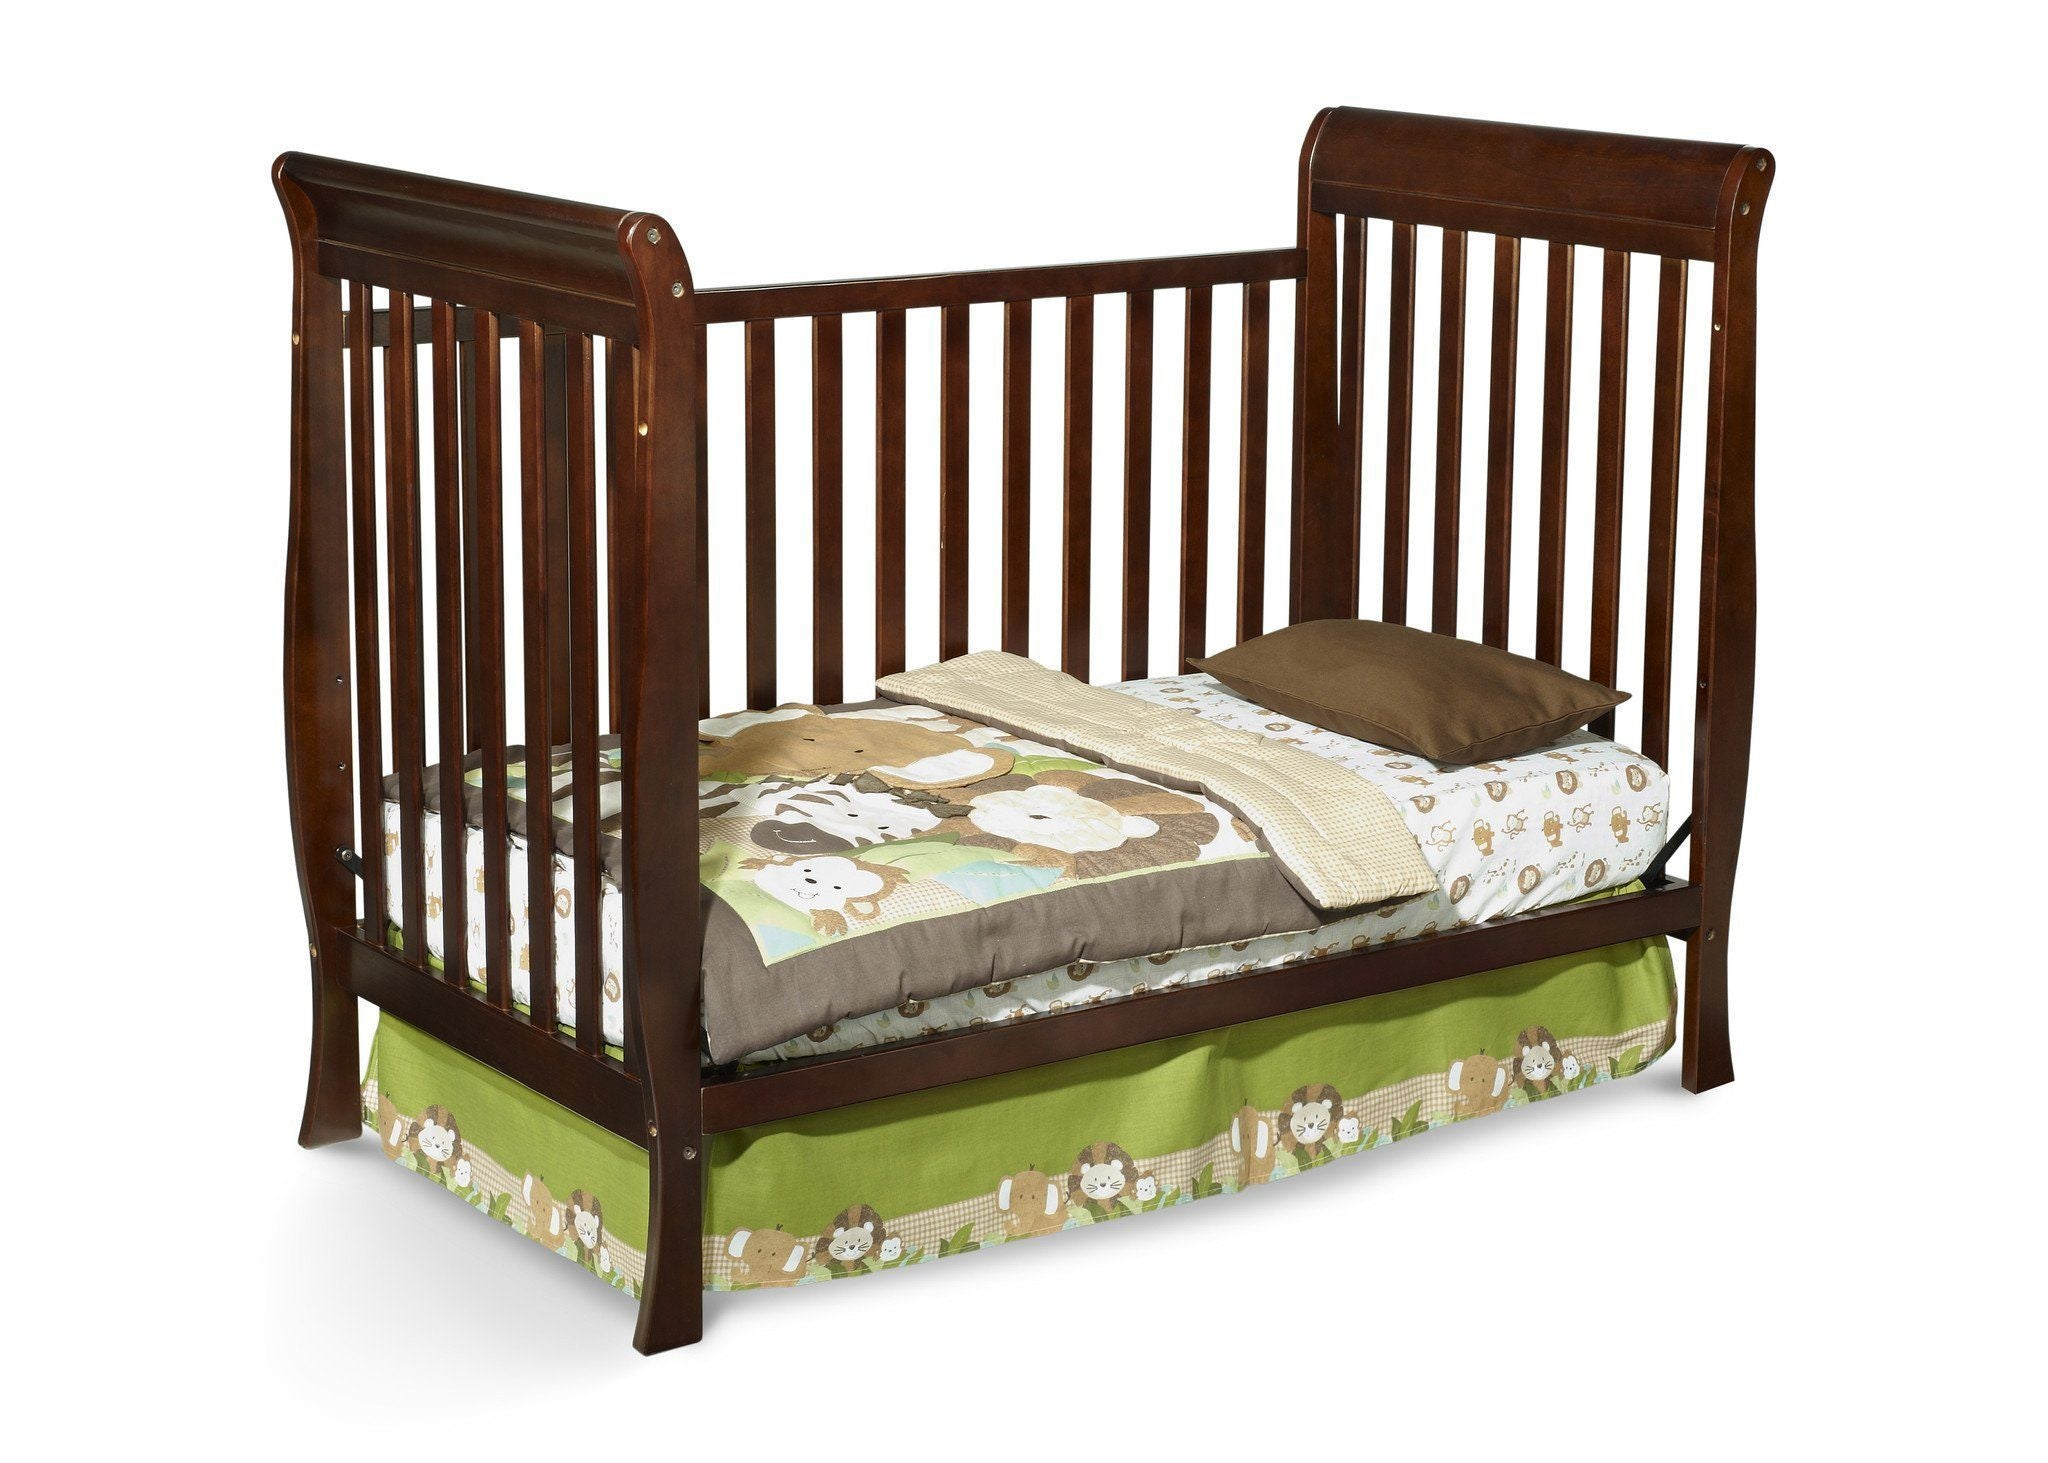 Delta Children Black Cherry Espresso (607) Winter Park 3-in-1 Crib, Toddle Bed Conversion c3c